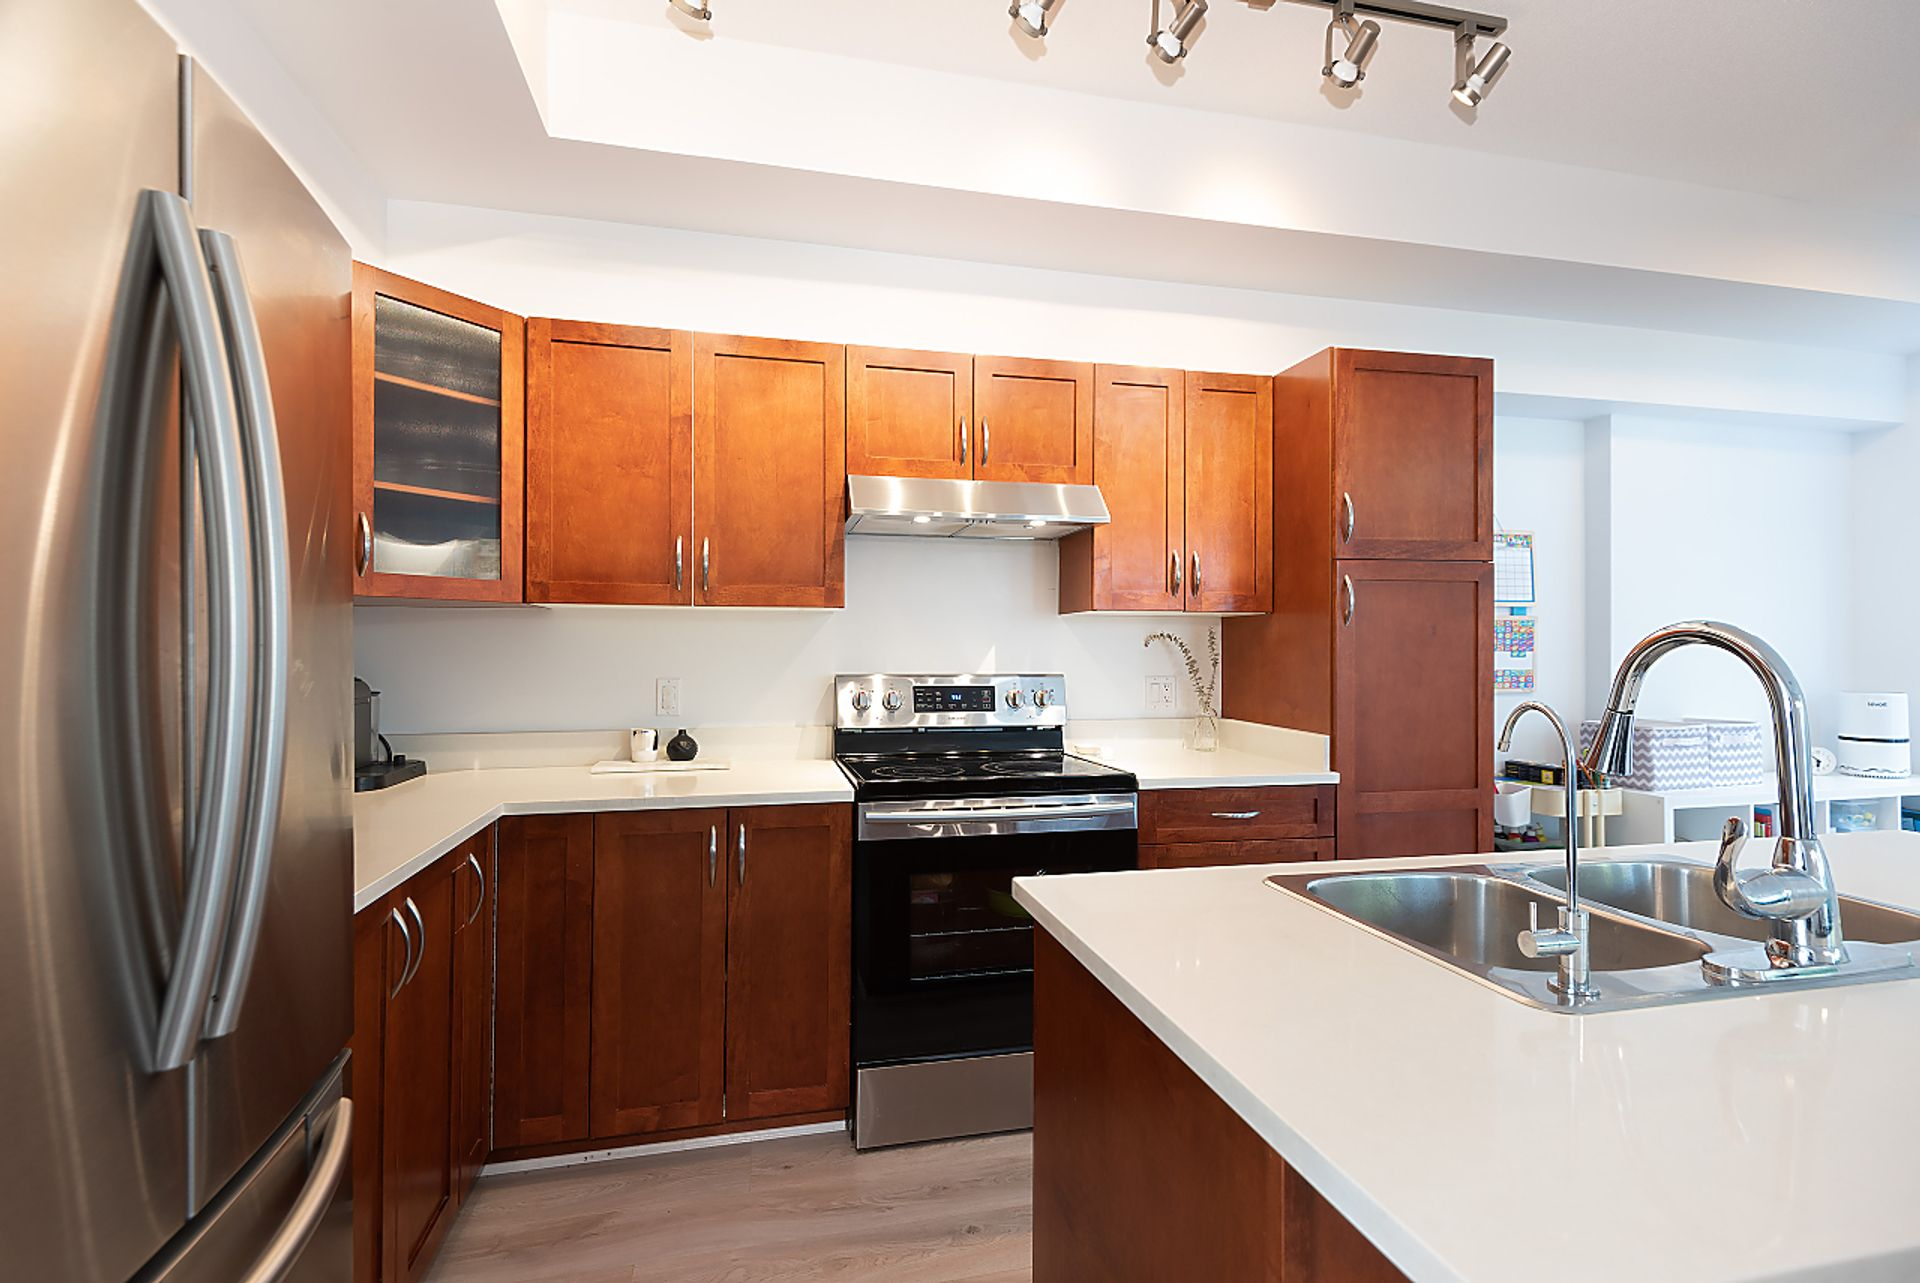 027 at 91 - 55 Hawthorn Drive, Heritage Woods PM, Port Moody